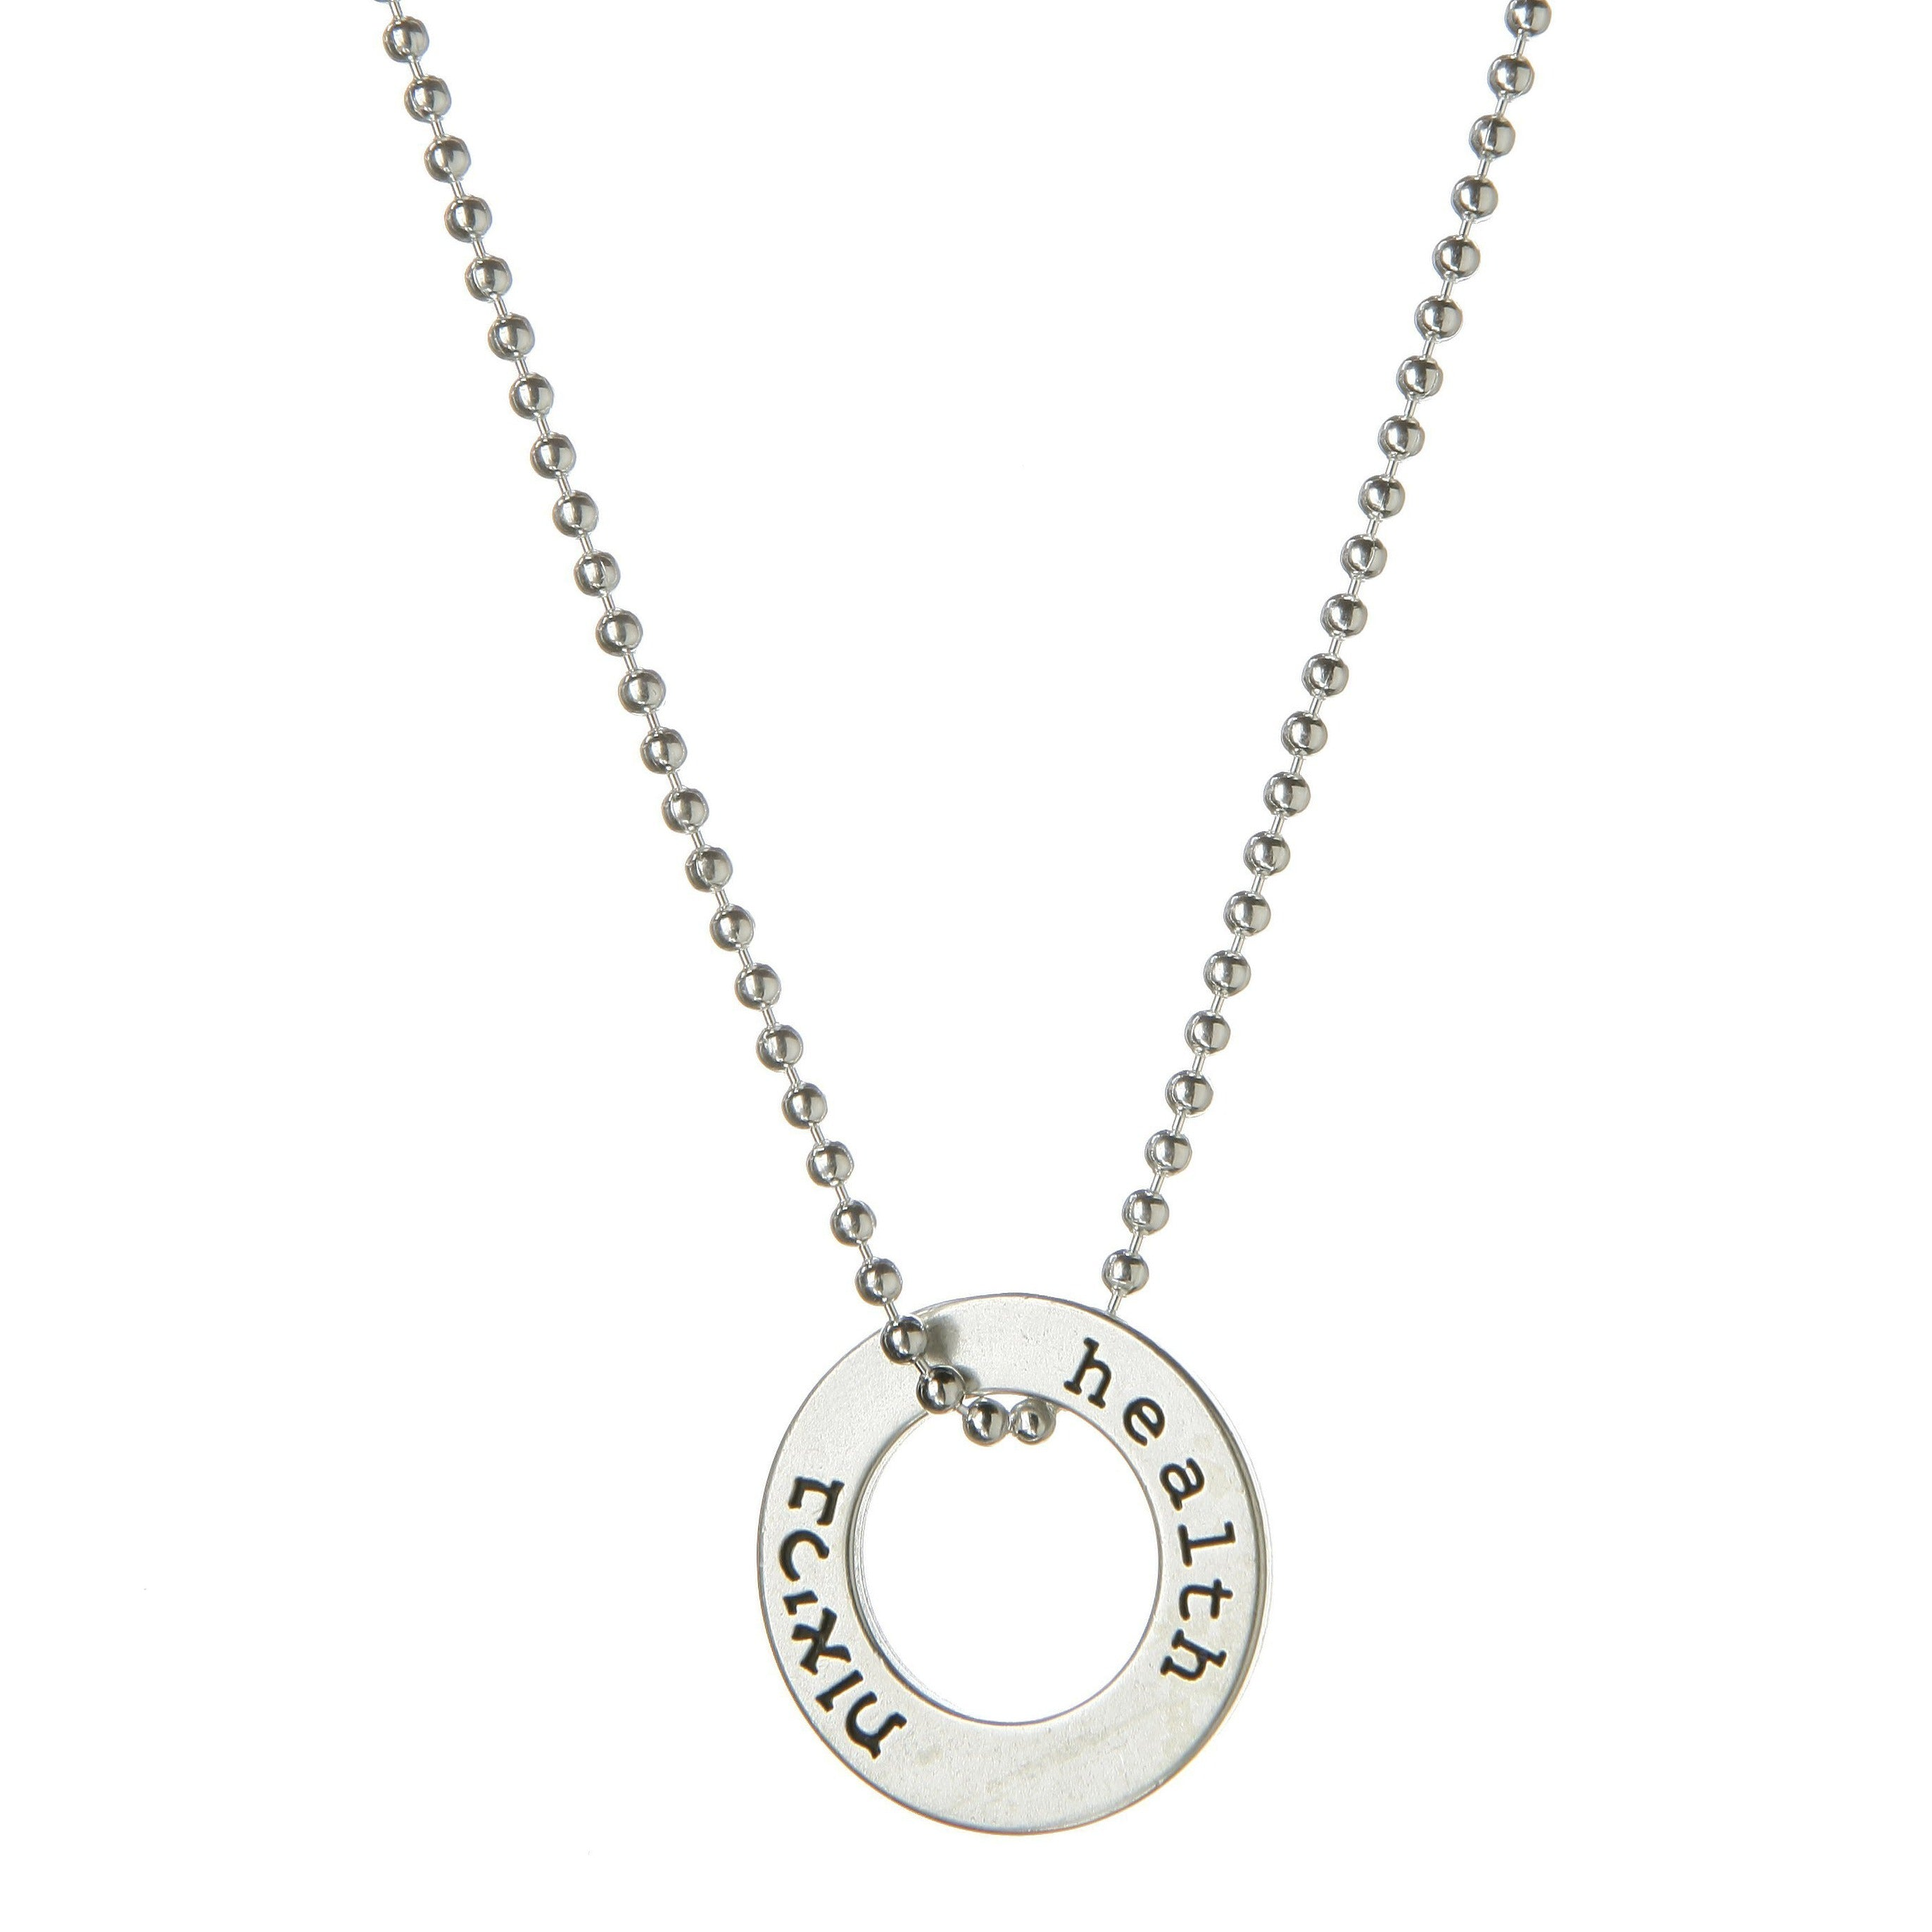 Health Necklace in Hebrew and English